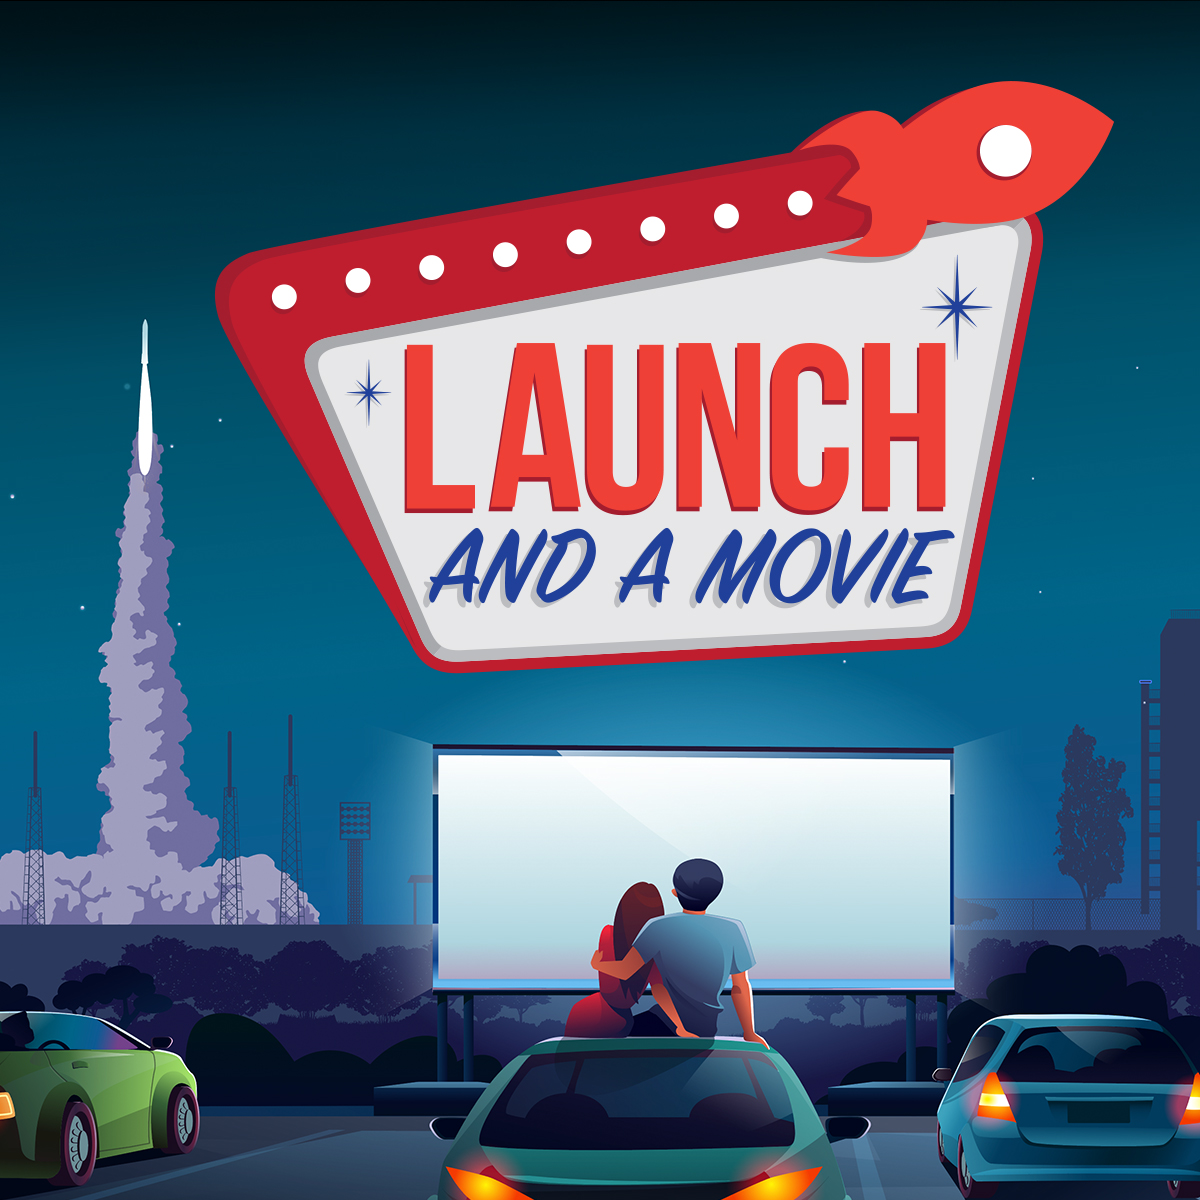 The Launch And A Movie experience allows guests to witness liftoff and a movie from the comfort of their cars.